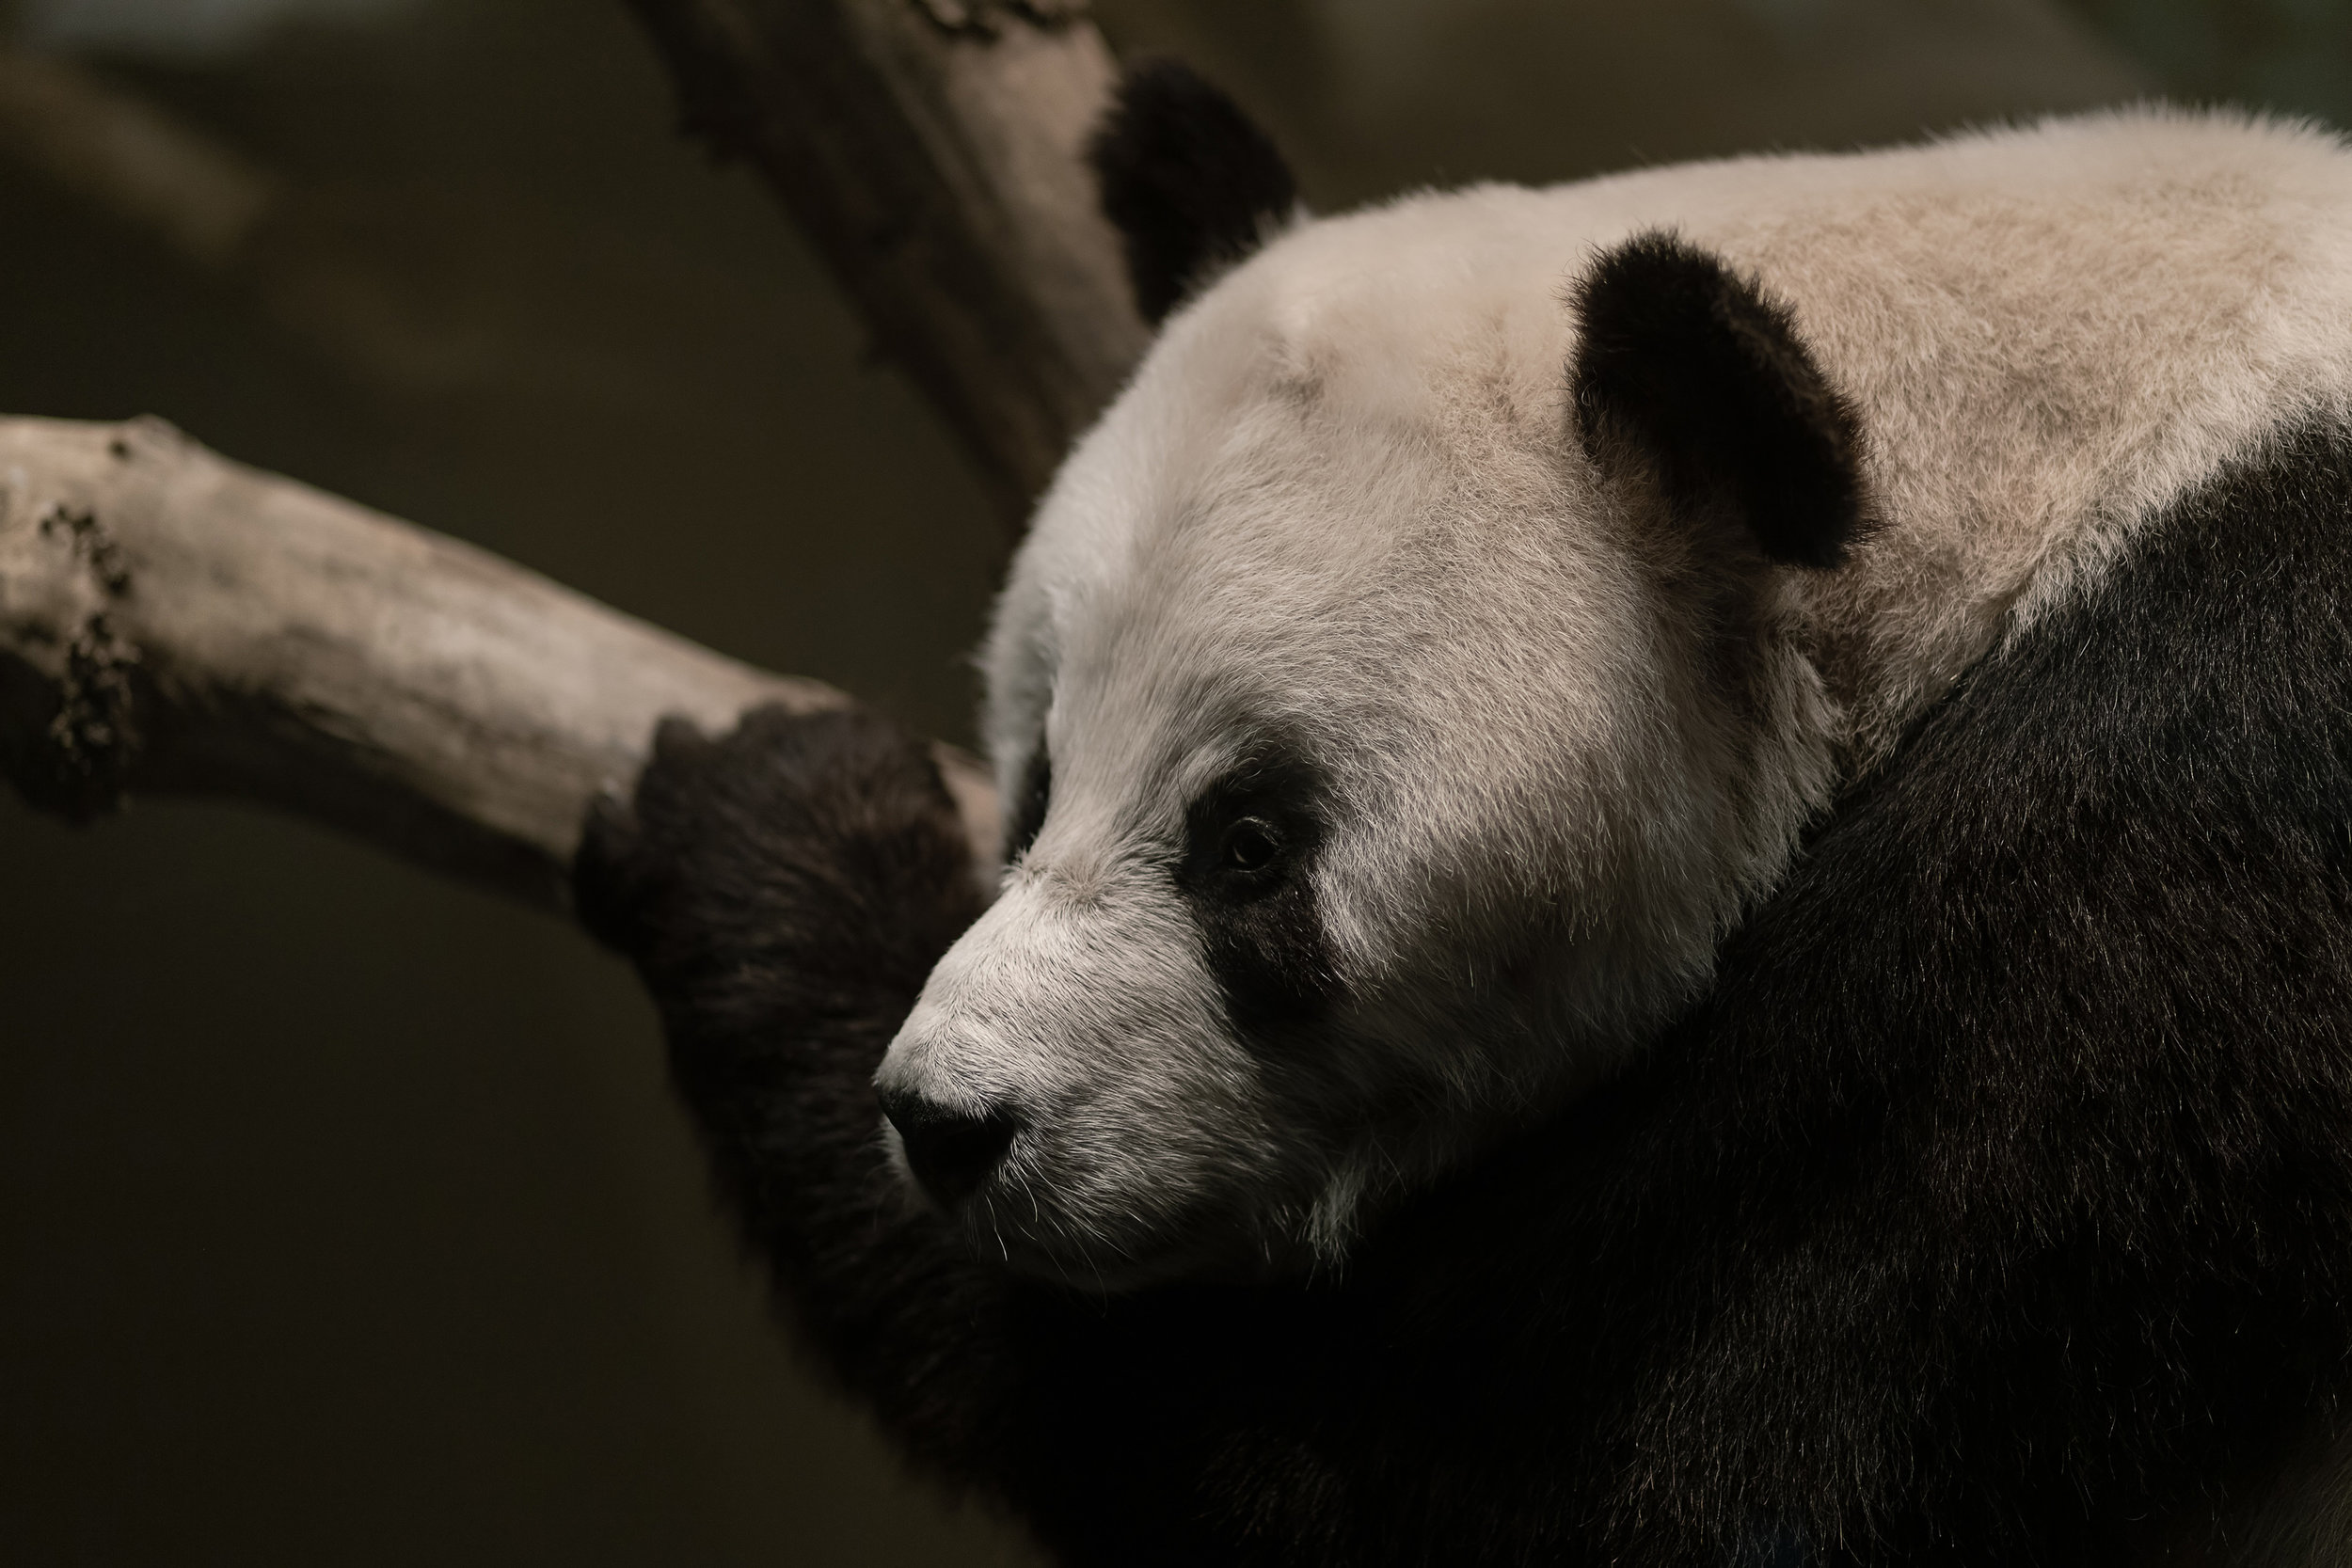 Portrait of a taxidermied great panda at the Naturkundemuseum, Berlin.